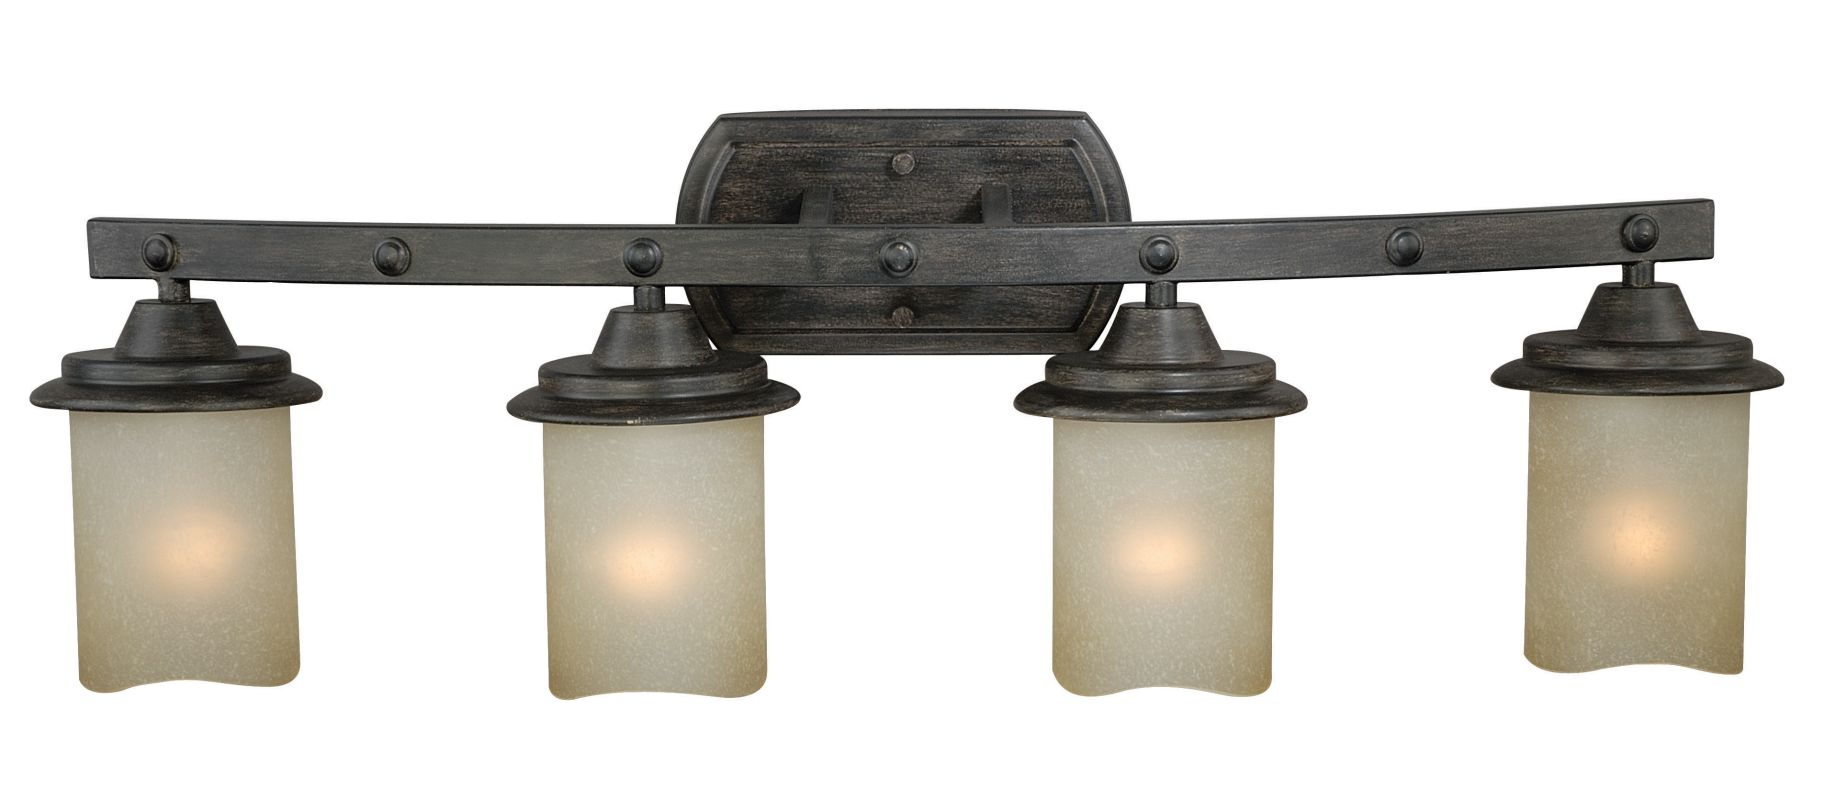 Vaxcel Lighting W0183 Halifax 4 Light Wall Sconce with Cylinder Shaped